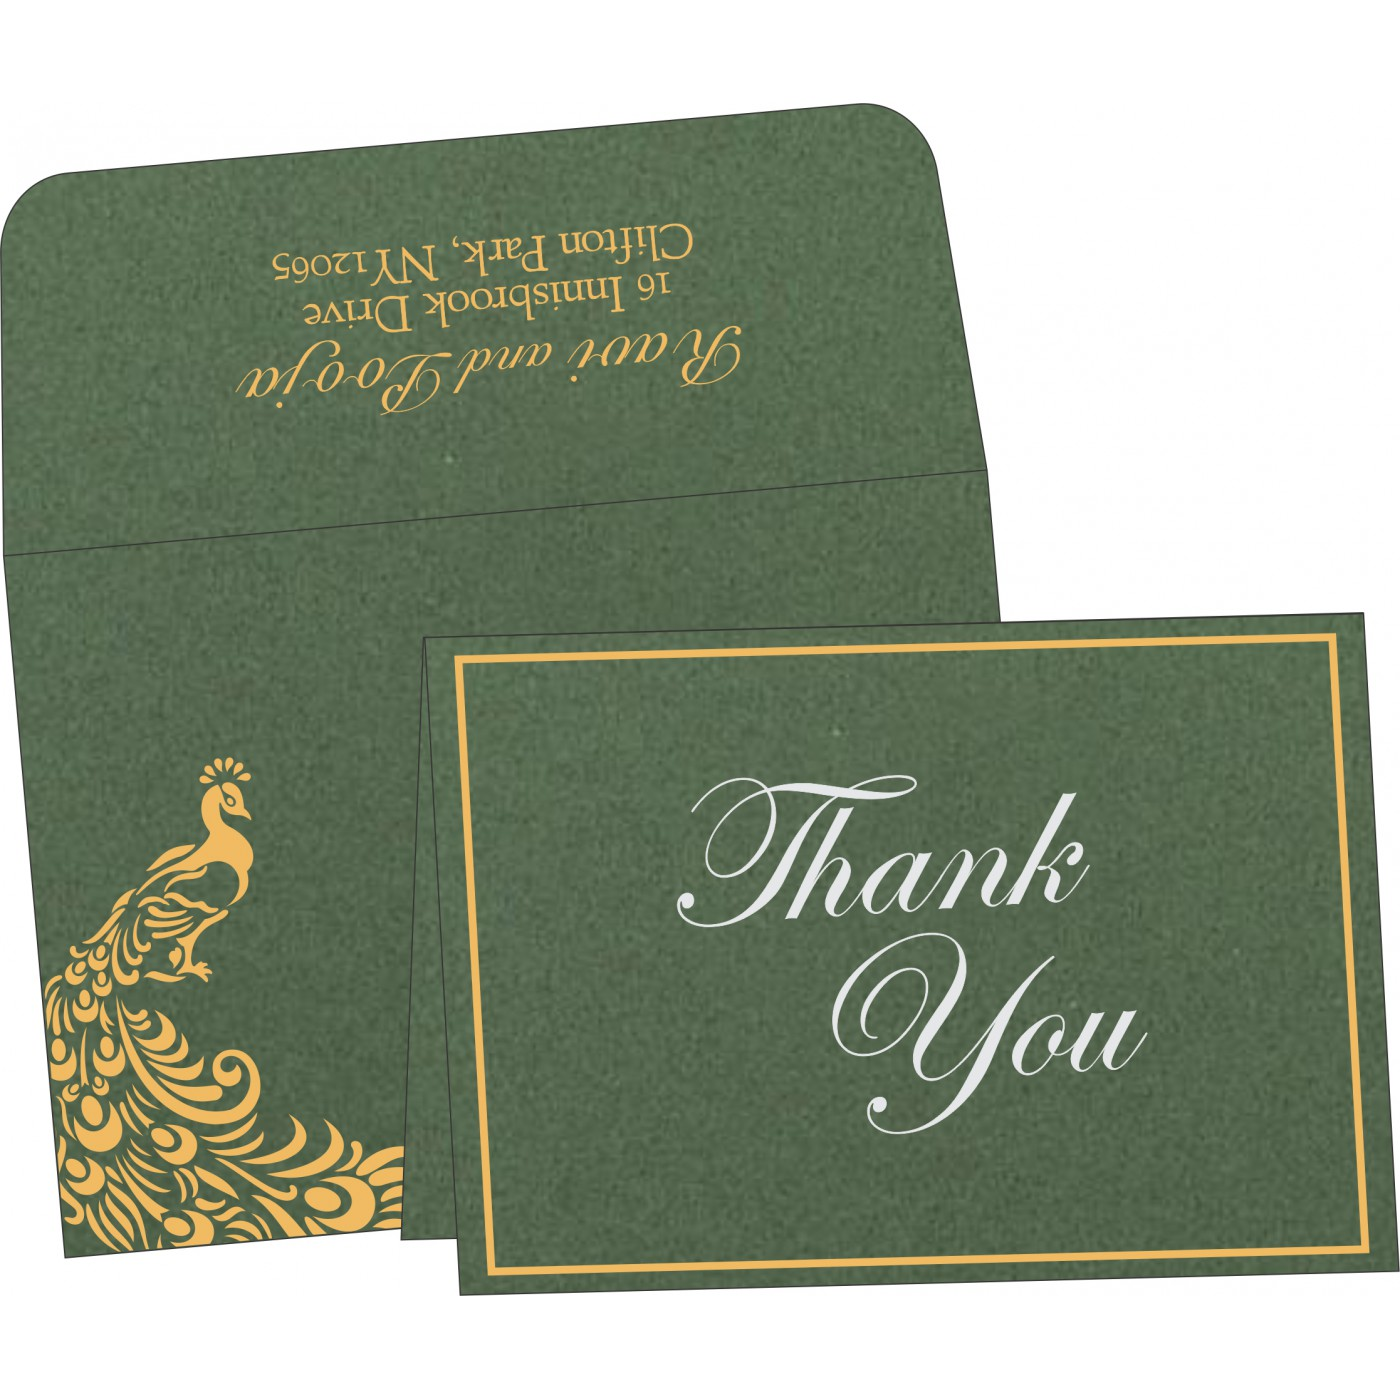 Thank You Cards : TYC-8255D - 123WeddingCards